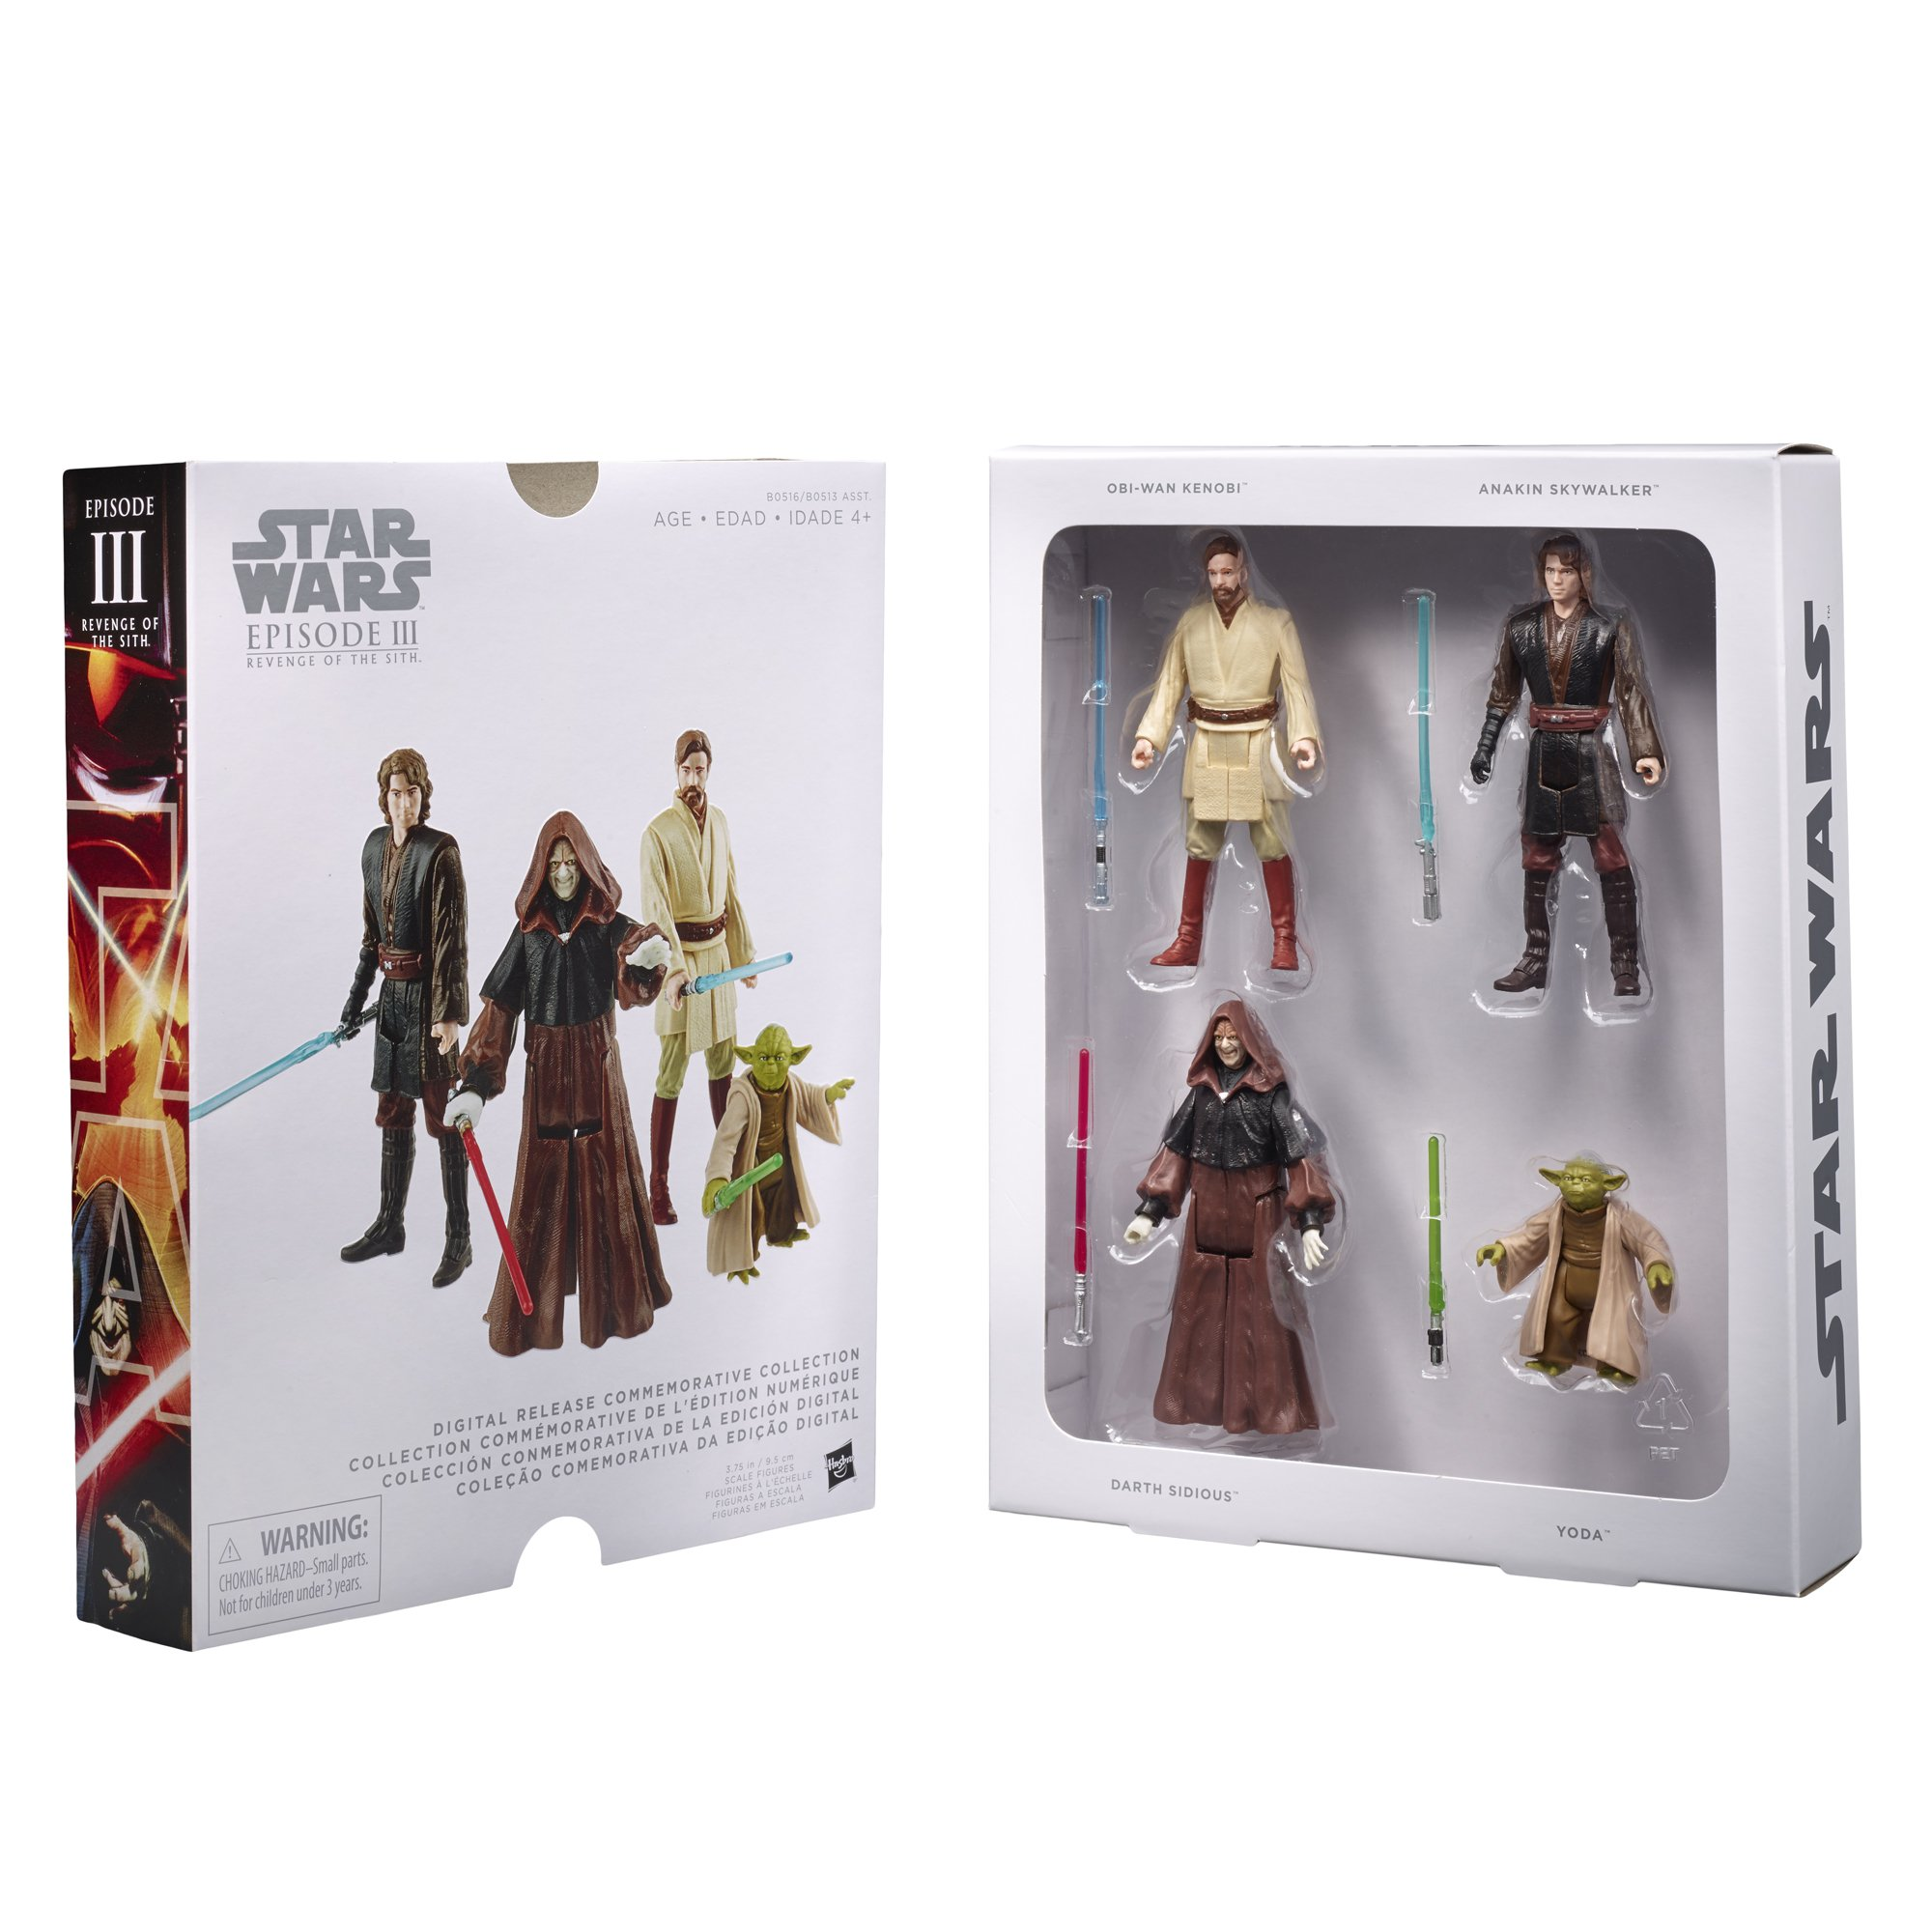 Star Wars Commemorative Collection Episode Iii Revenge Of The Sith Buy Online In Bahamas Star Wars Products In Bahamas See Prices Reviews And Free Delivery Over Bsd80 Desertcart